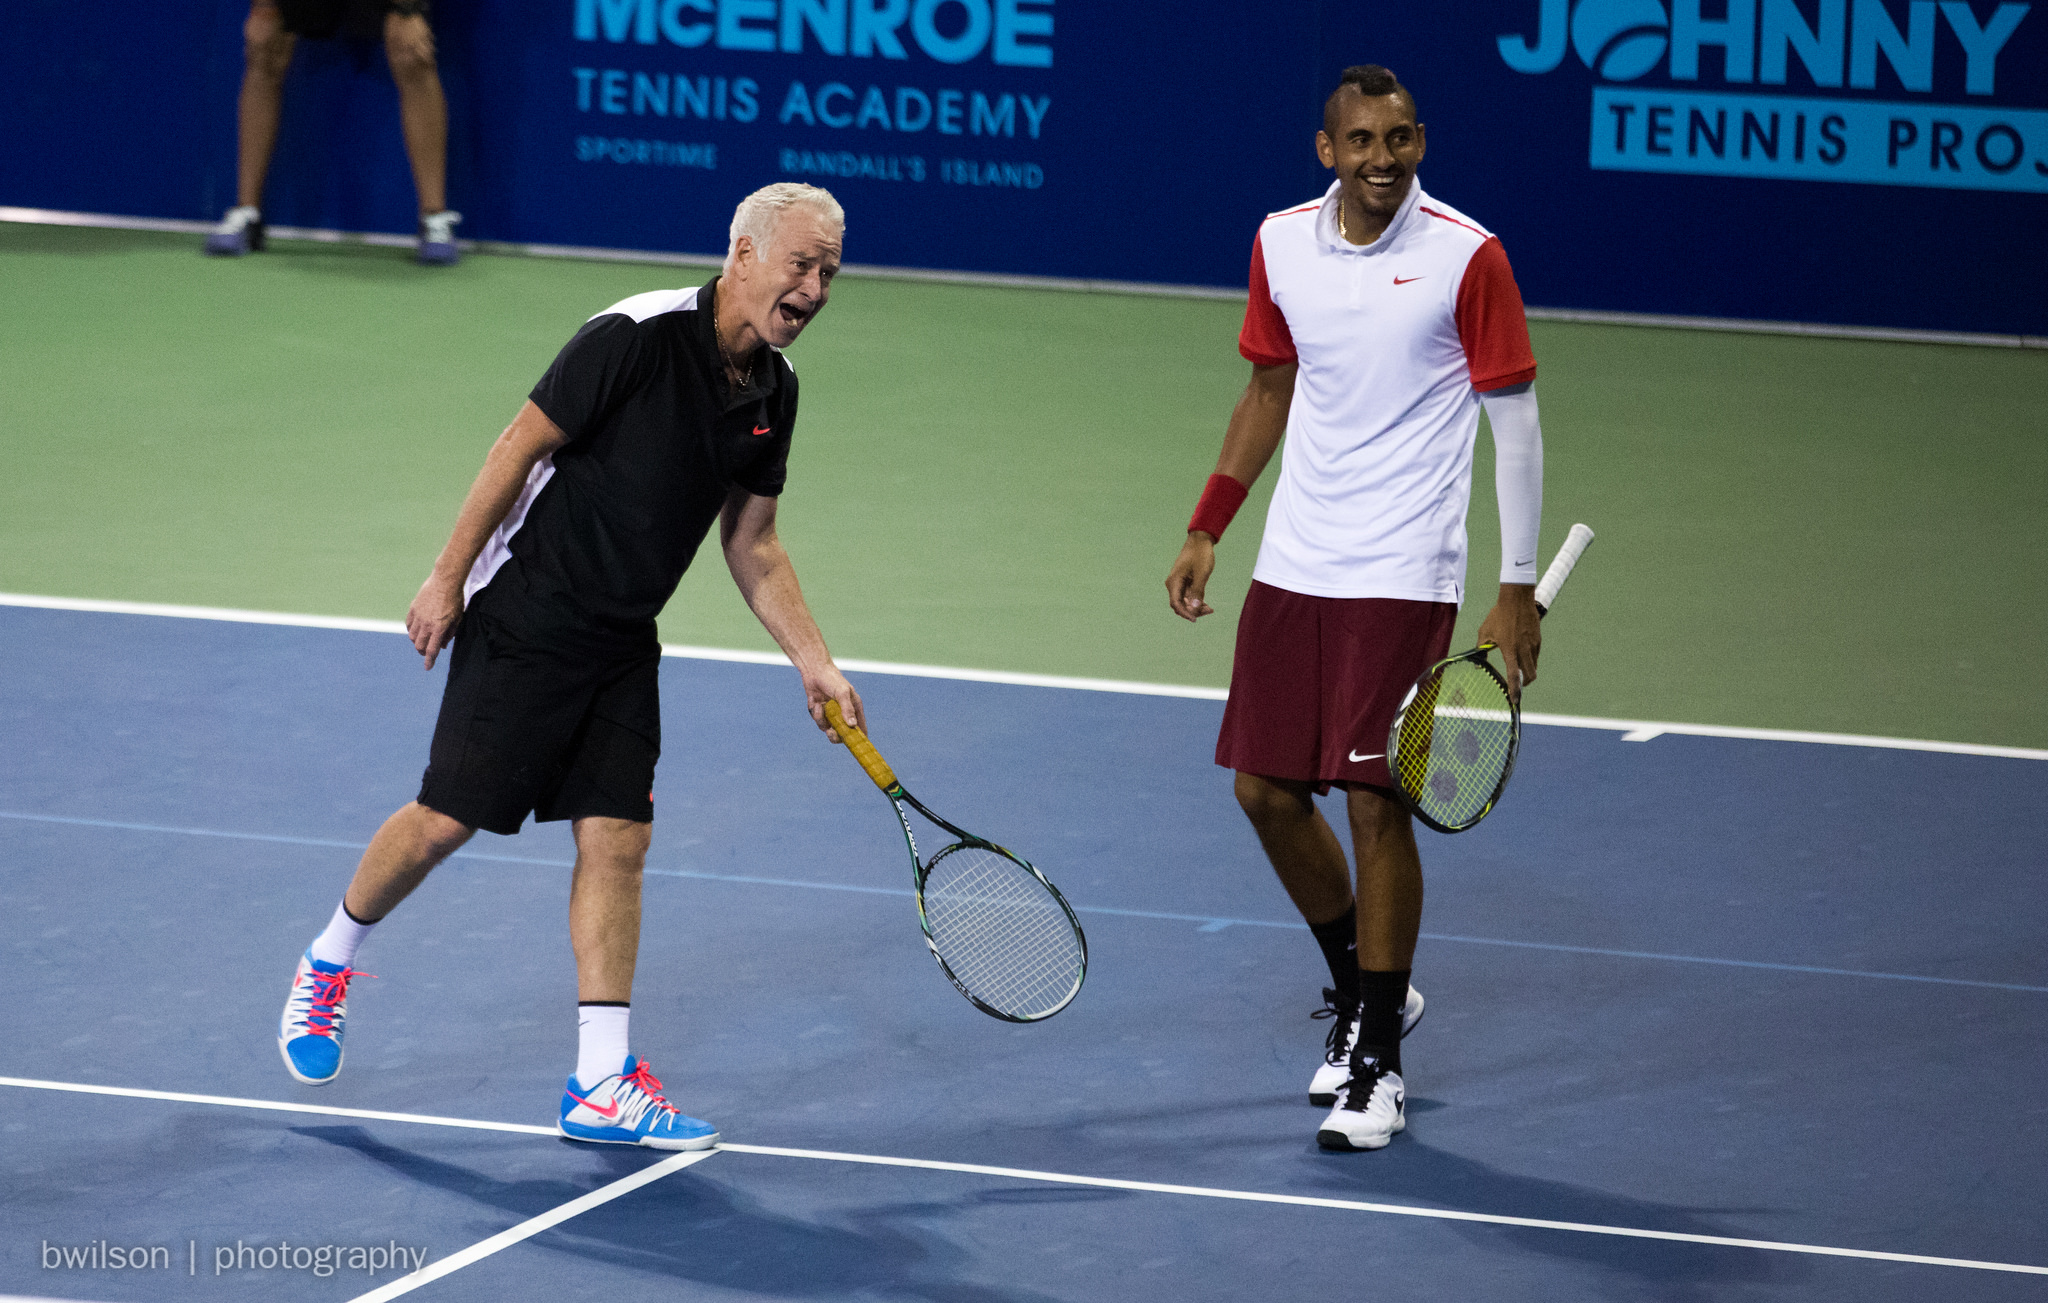 John McEnroe and Nick Kyrgios